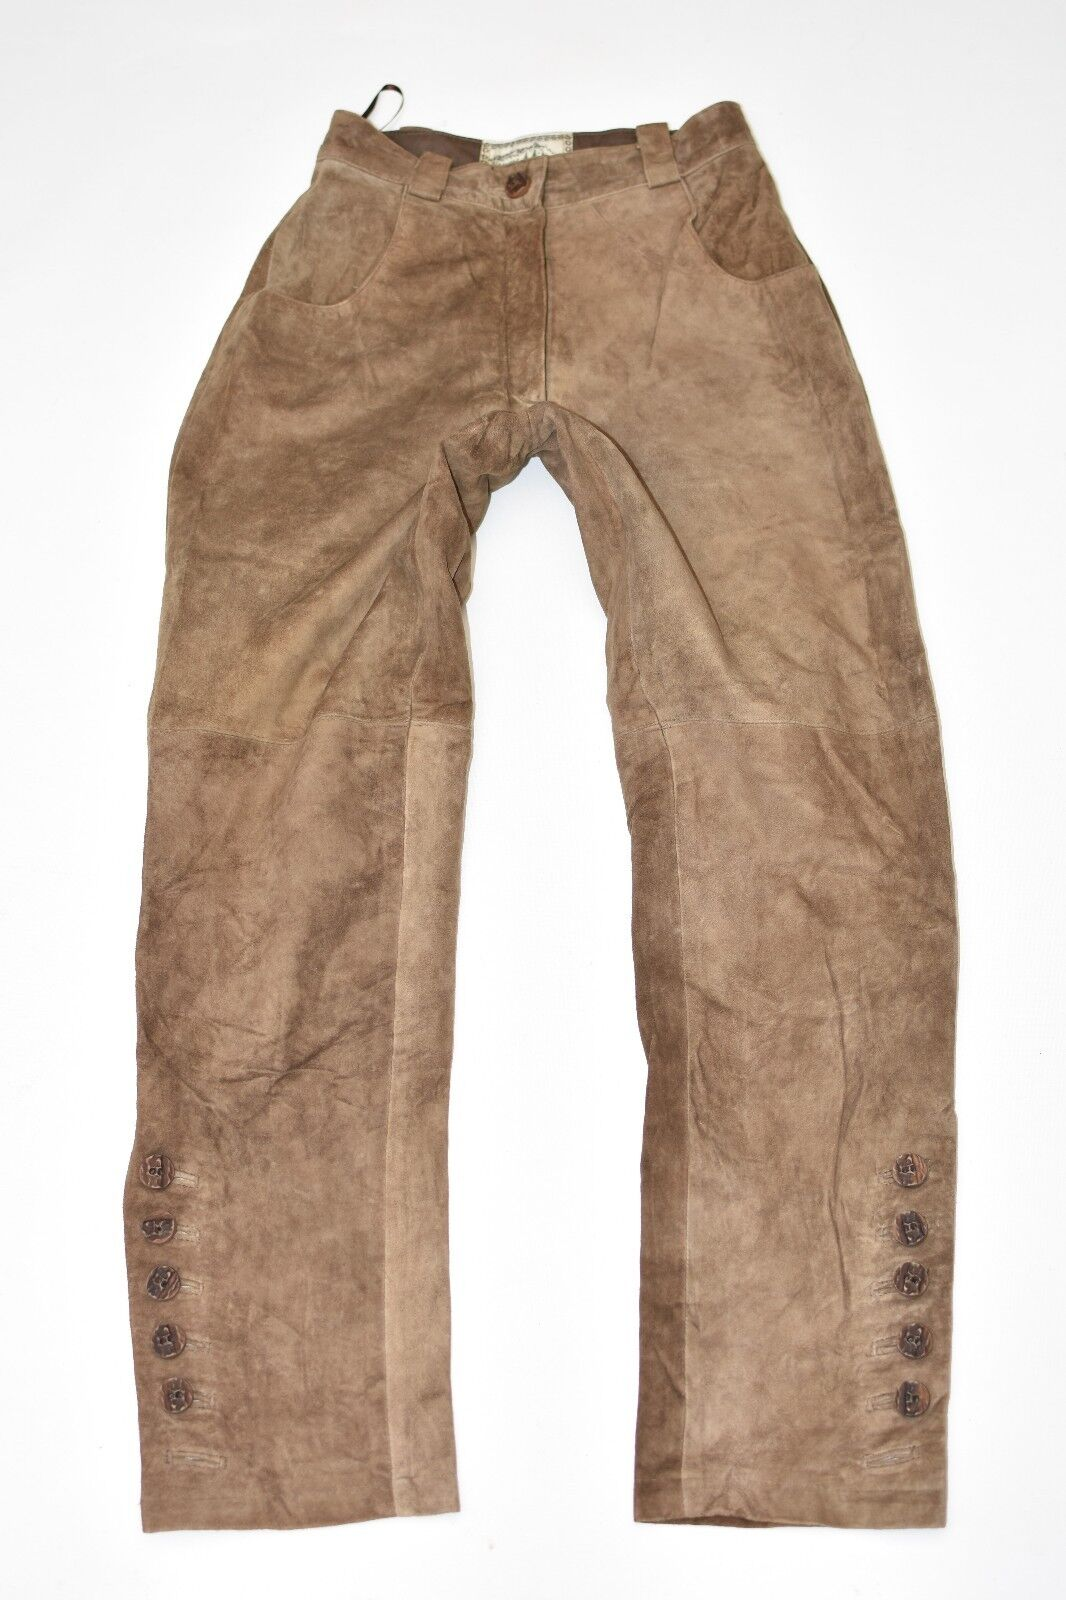 Brown Leather NATURAL LIFE Straight Biker Women's Trousers Pants Size XS L28